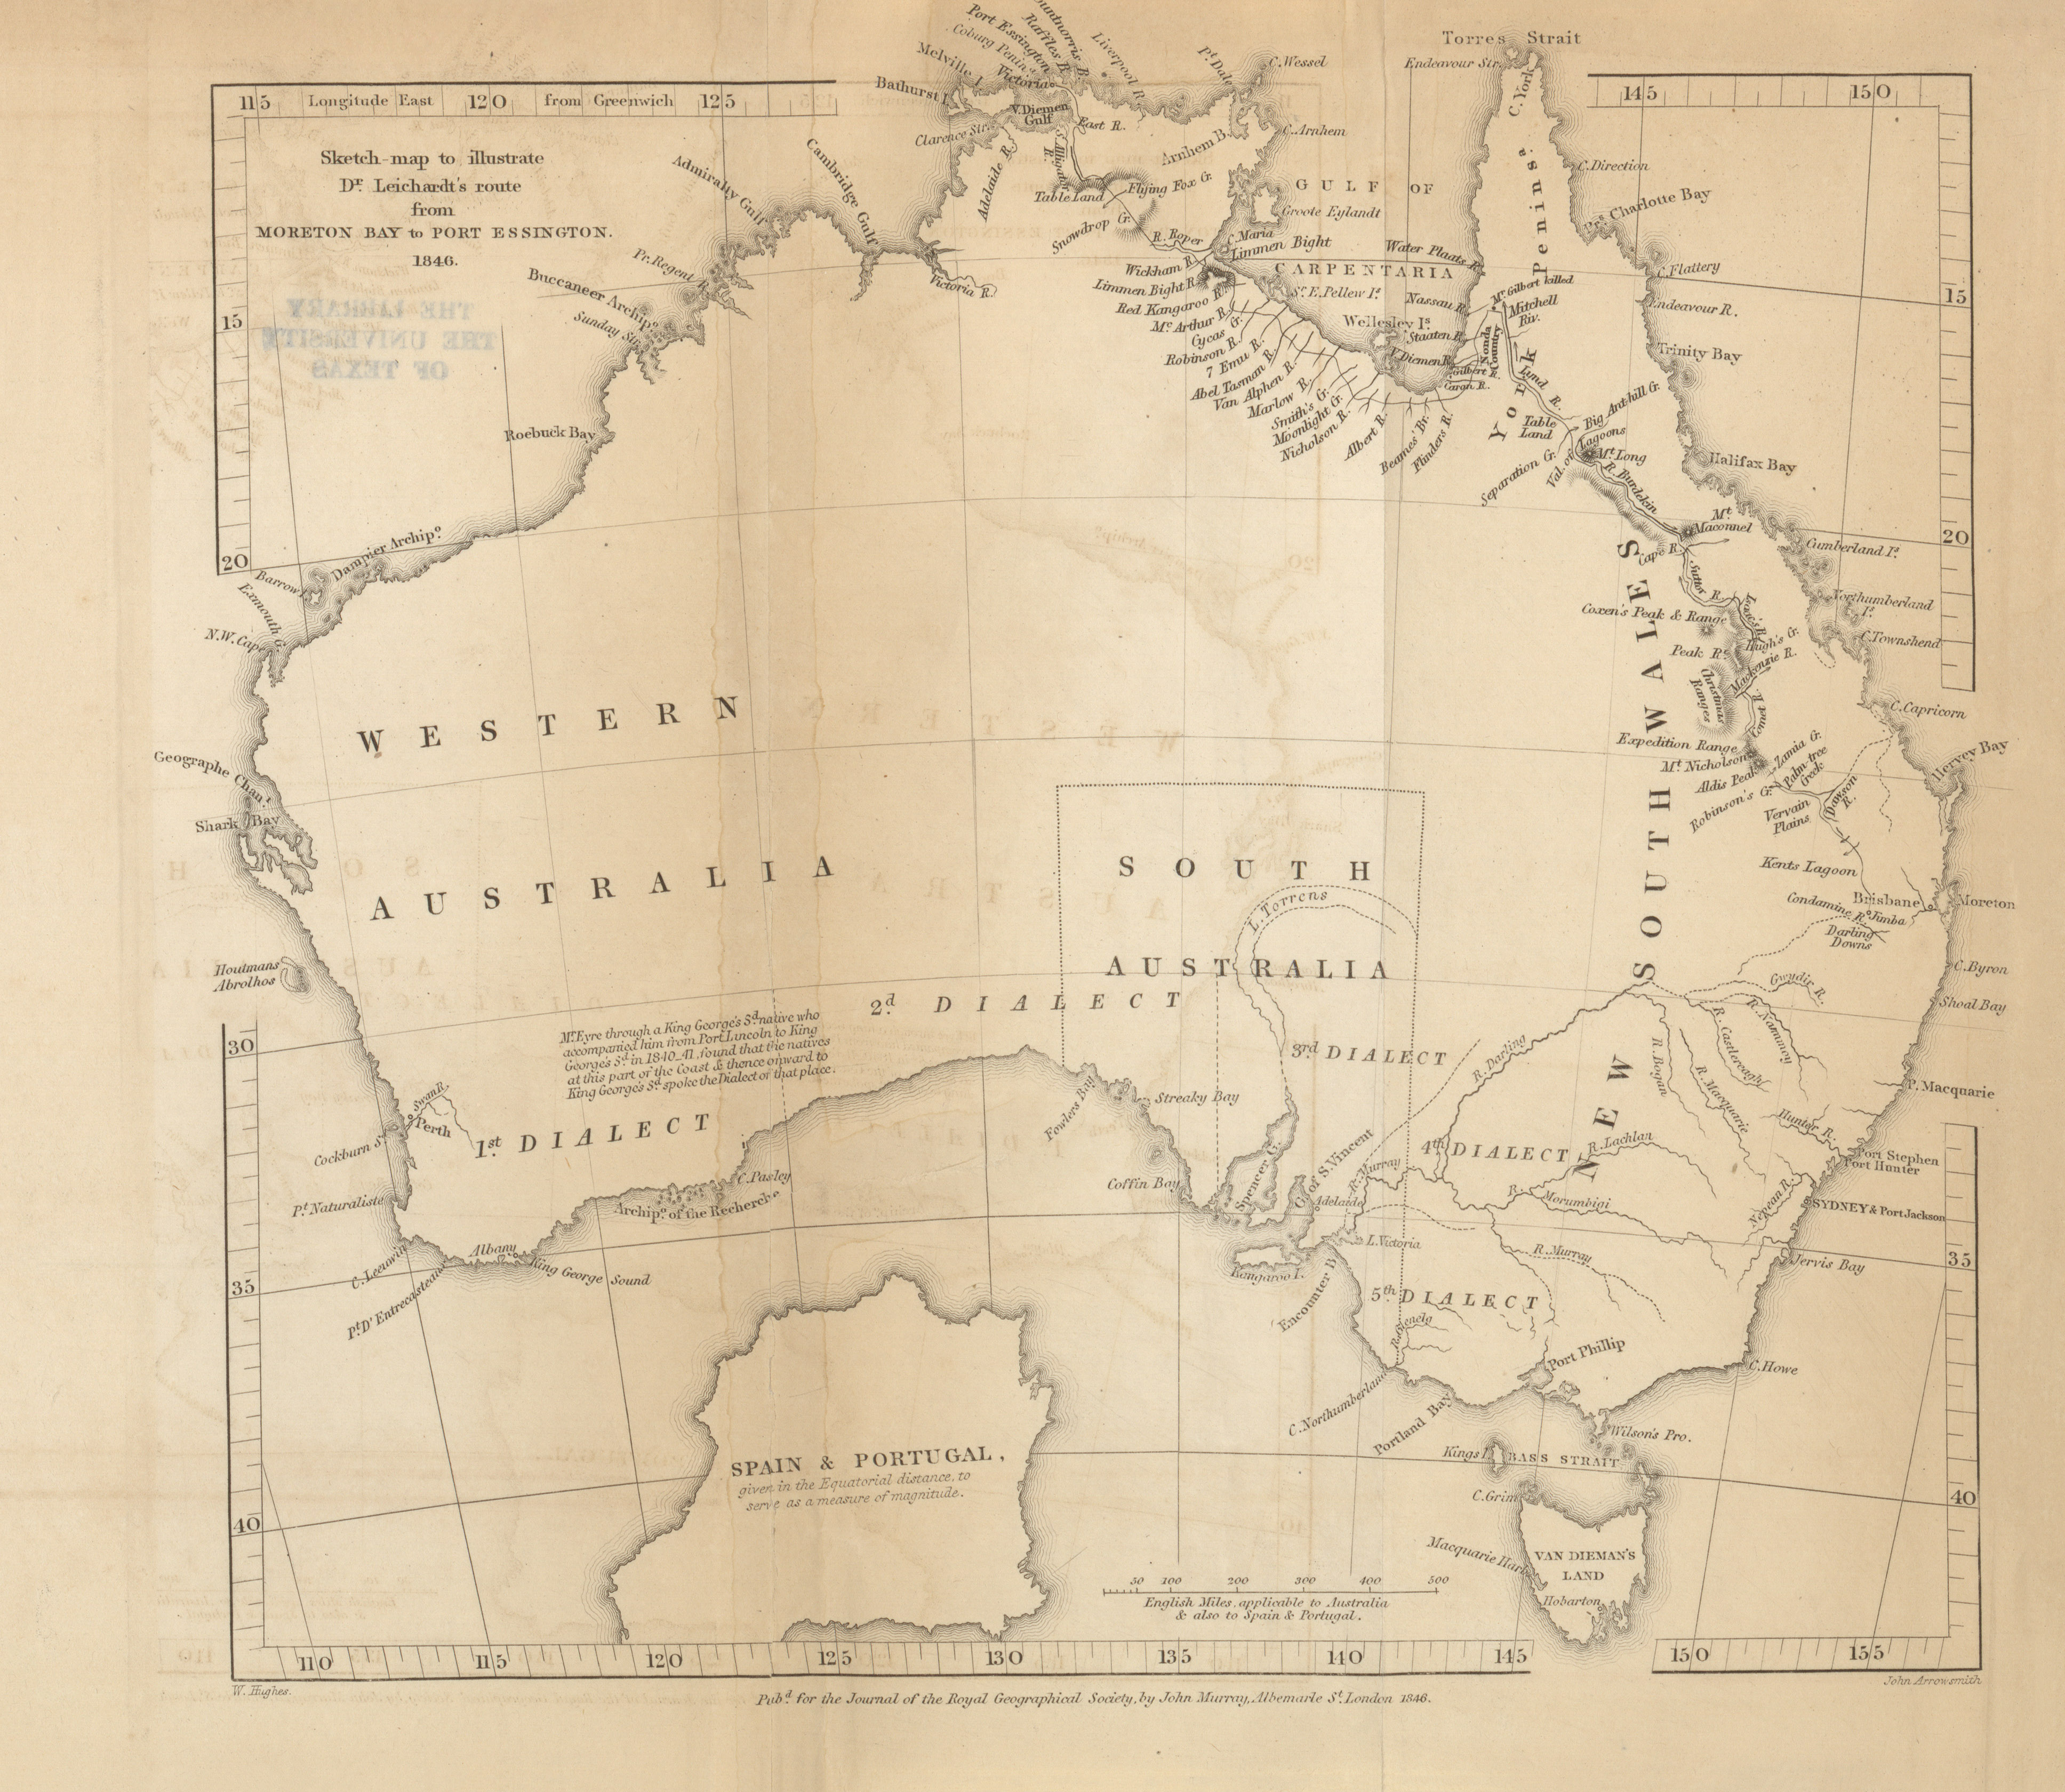 1846 2 3mb Account Of Dr Ludwig Leichardt S Expedition From Moreton Bay To Port Essington Australia